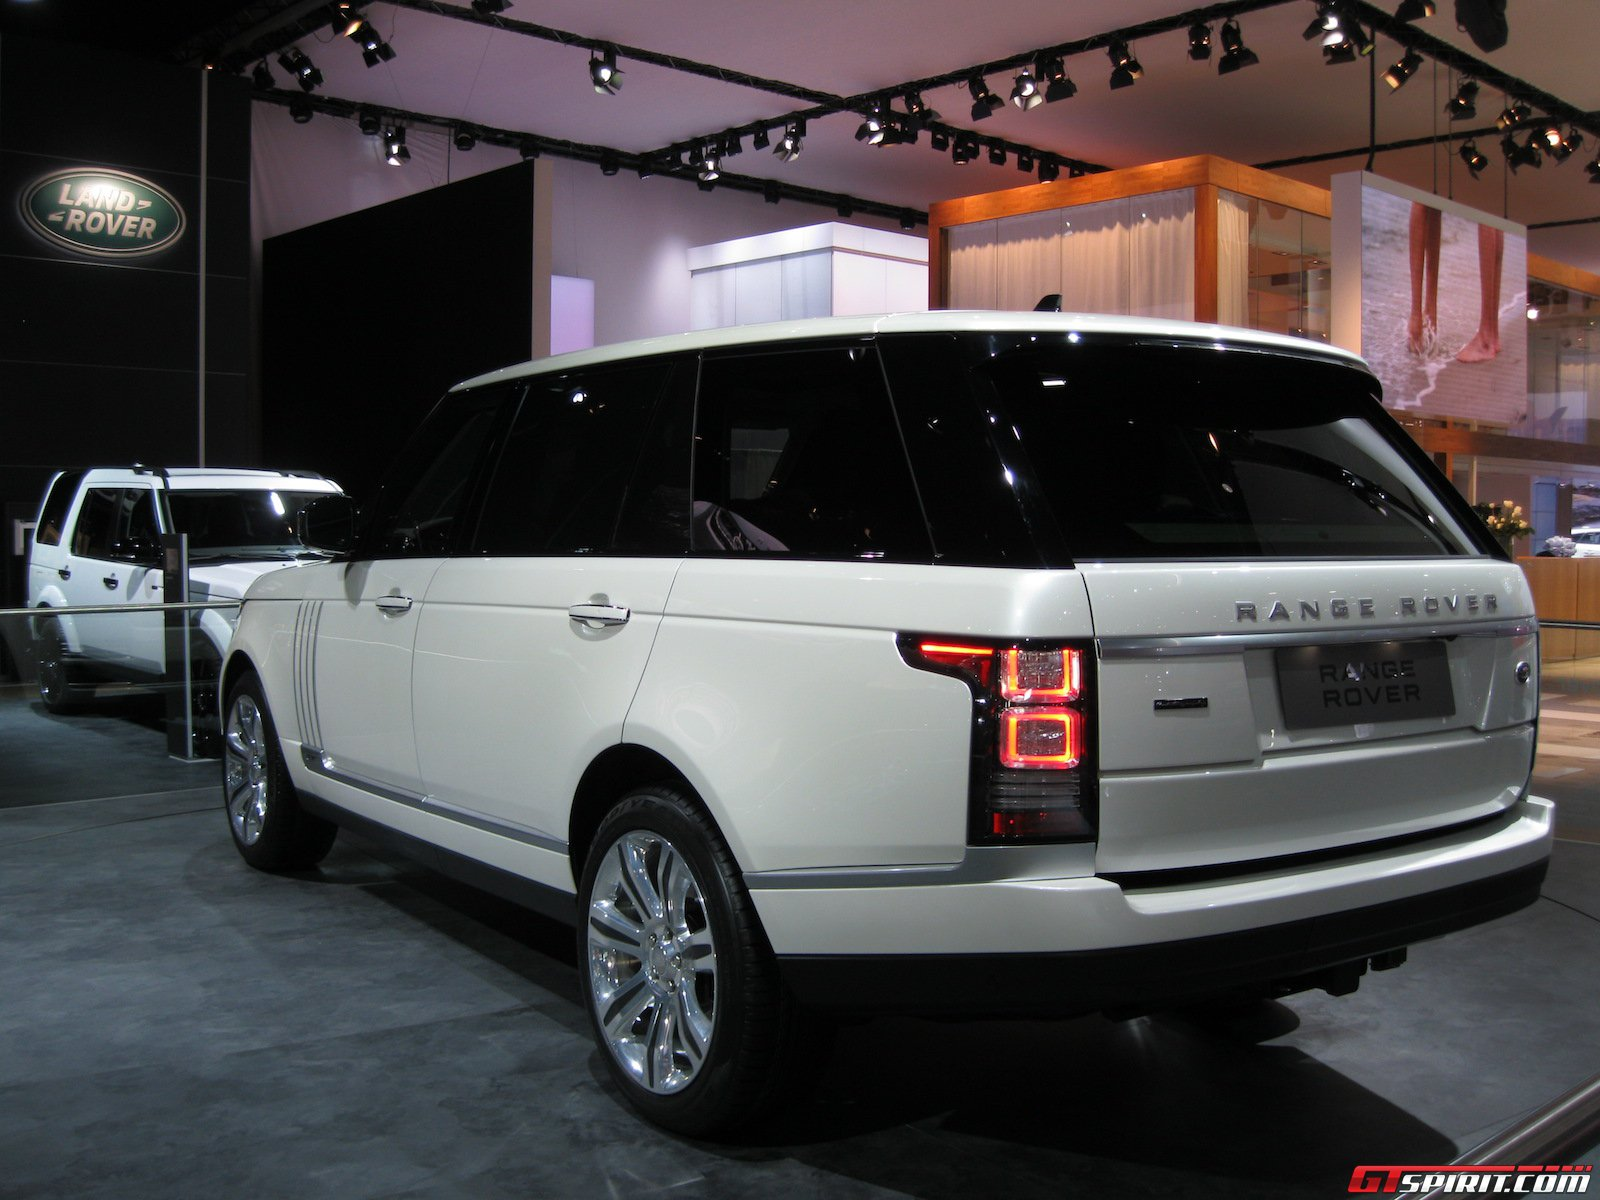 detroit 2014 range rover long wheelbase gtspirit. Black Bedroom Furniture Sets. Home Design Ideas